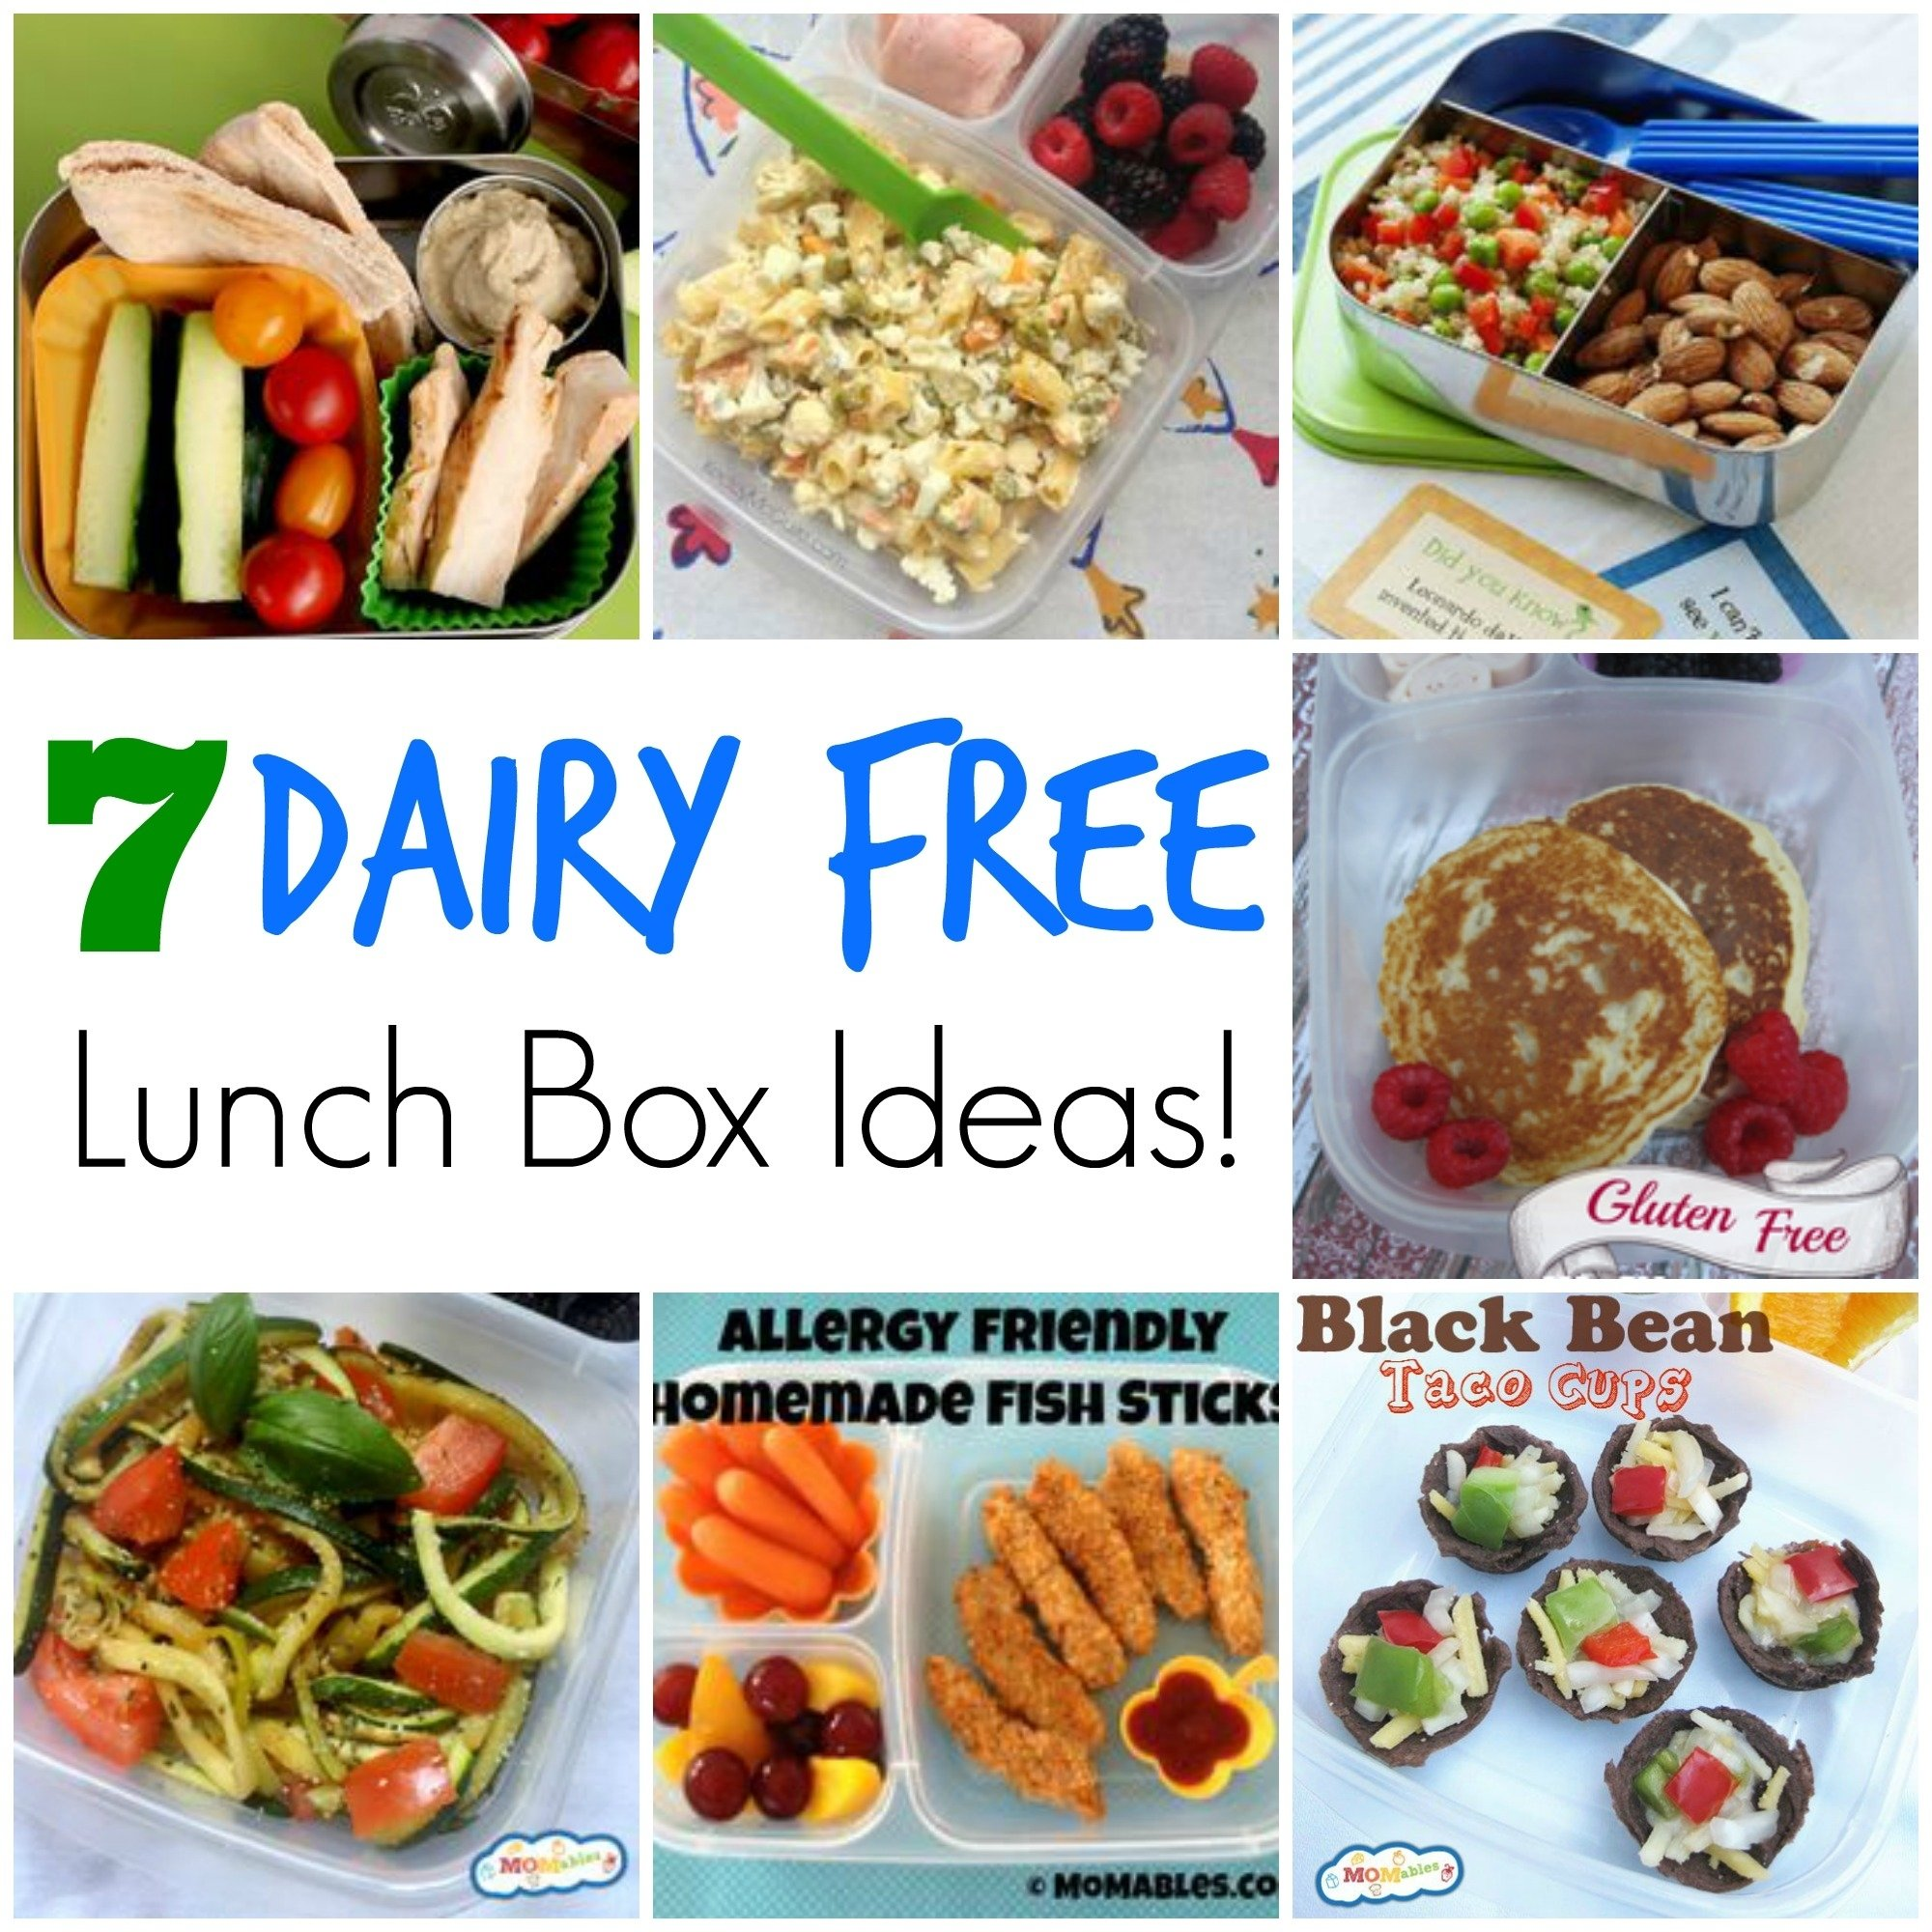 10 Fashionable Lunch Ideas For Picky Kids 7 dairy free school lunch ideas 12